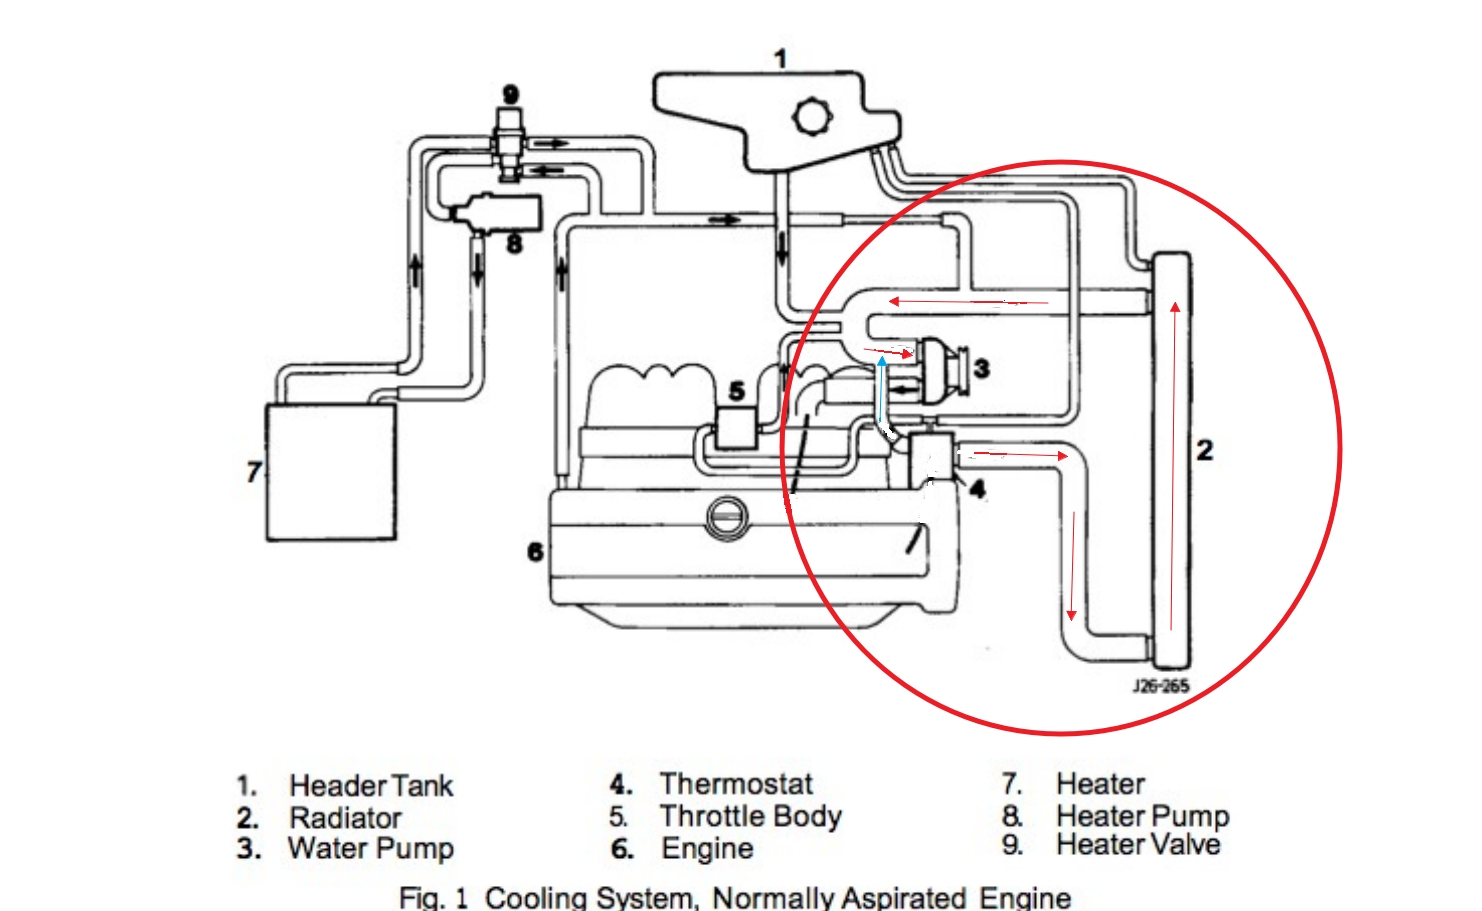 S1 Sleeved Thermostat